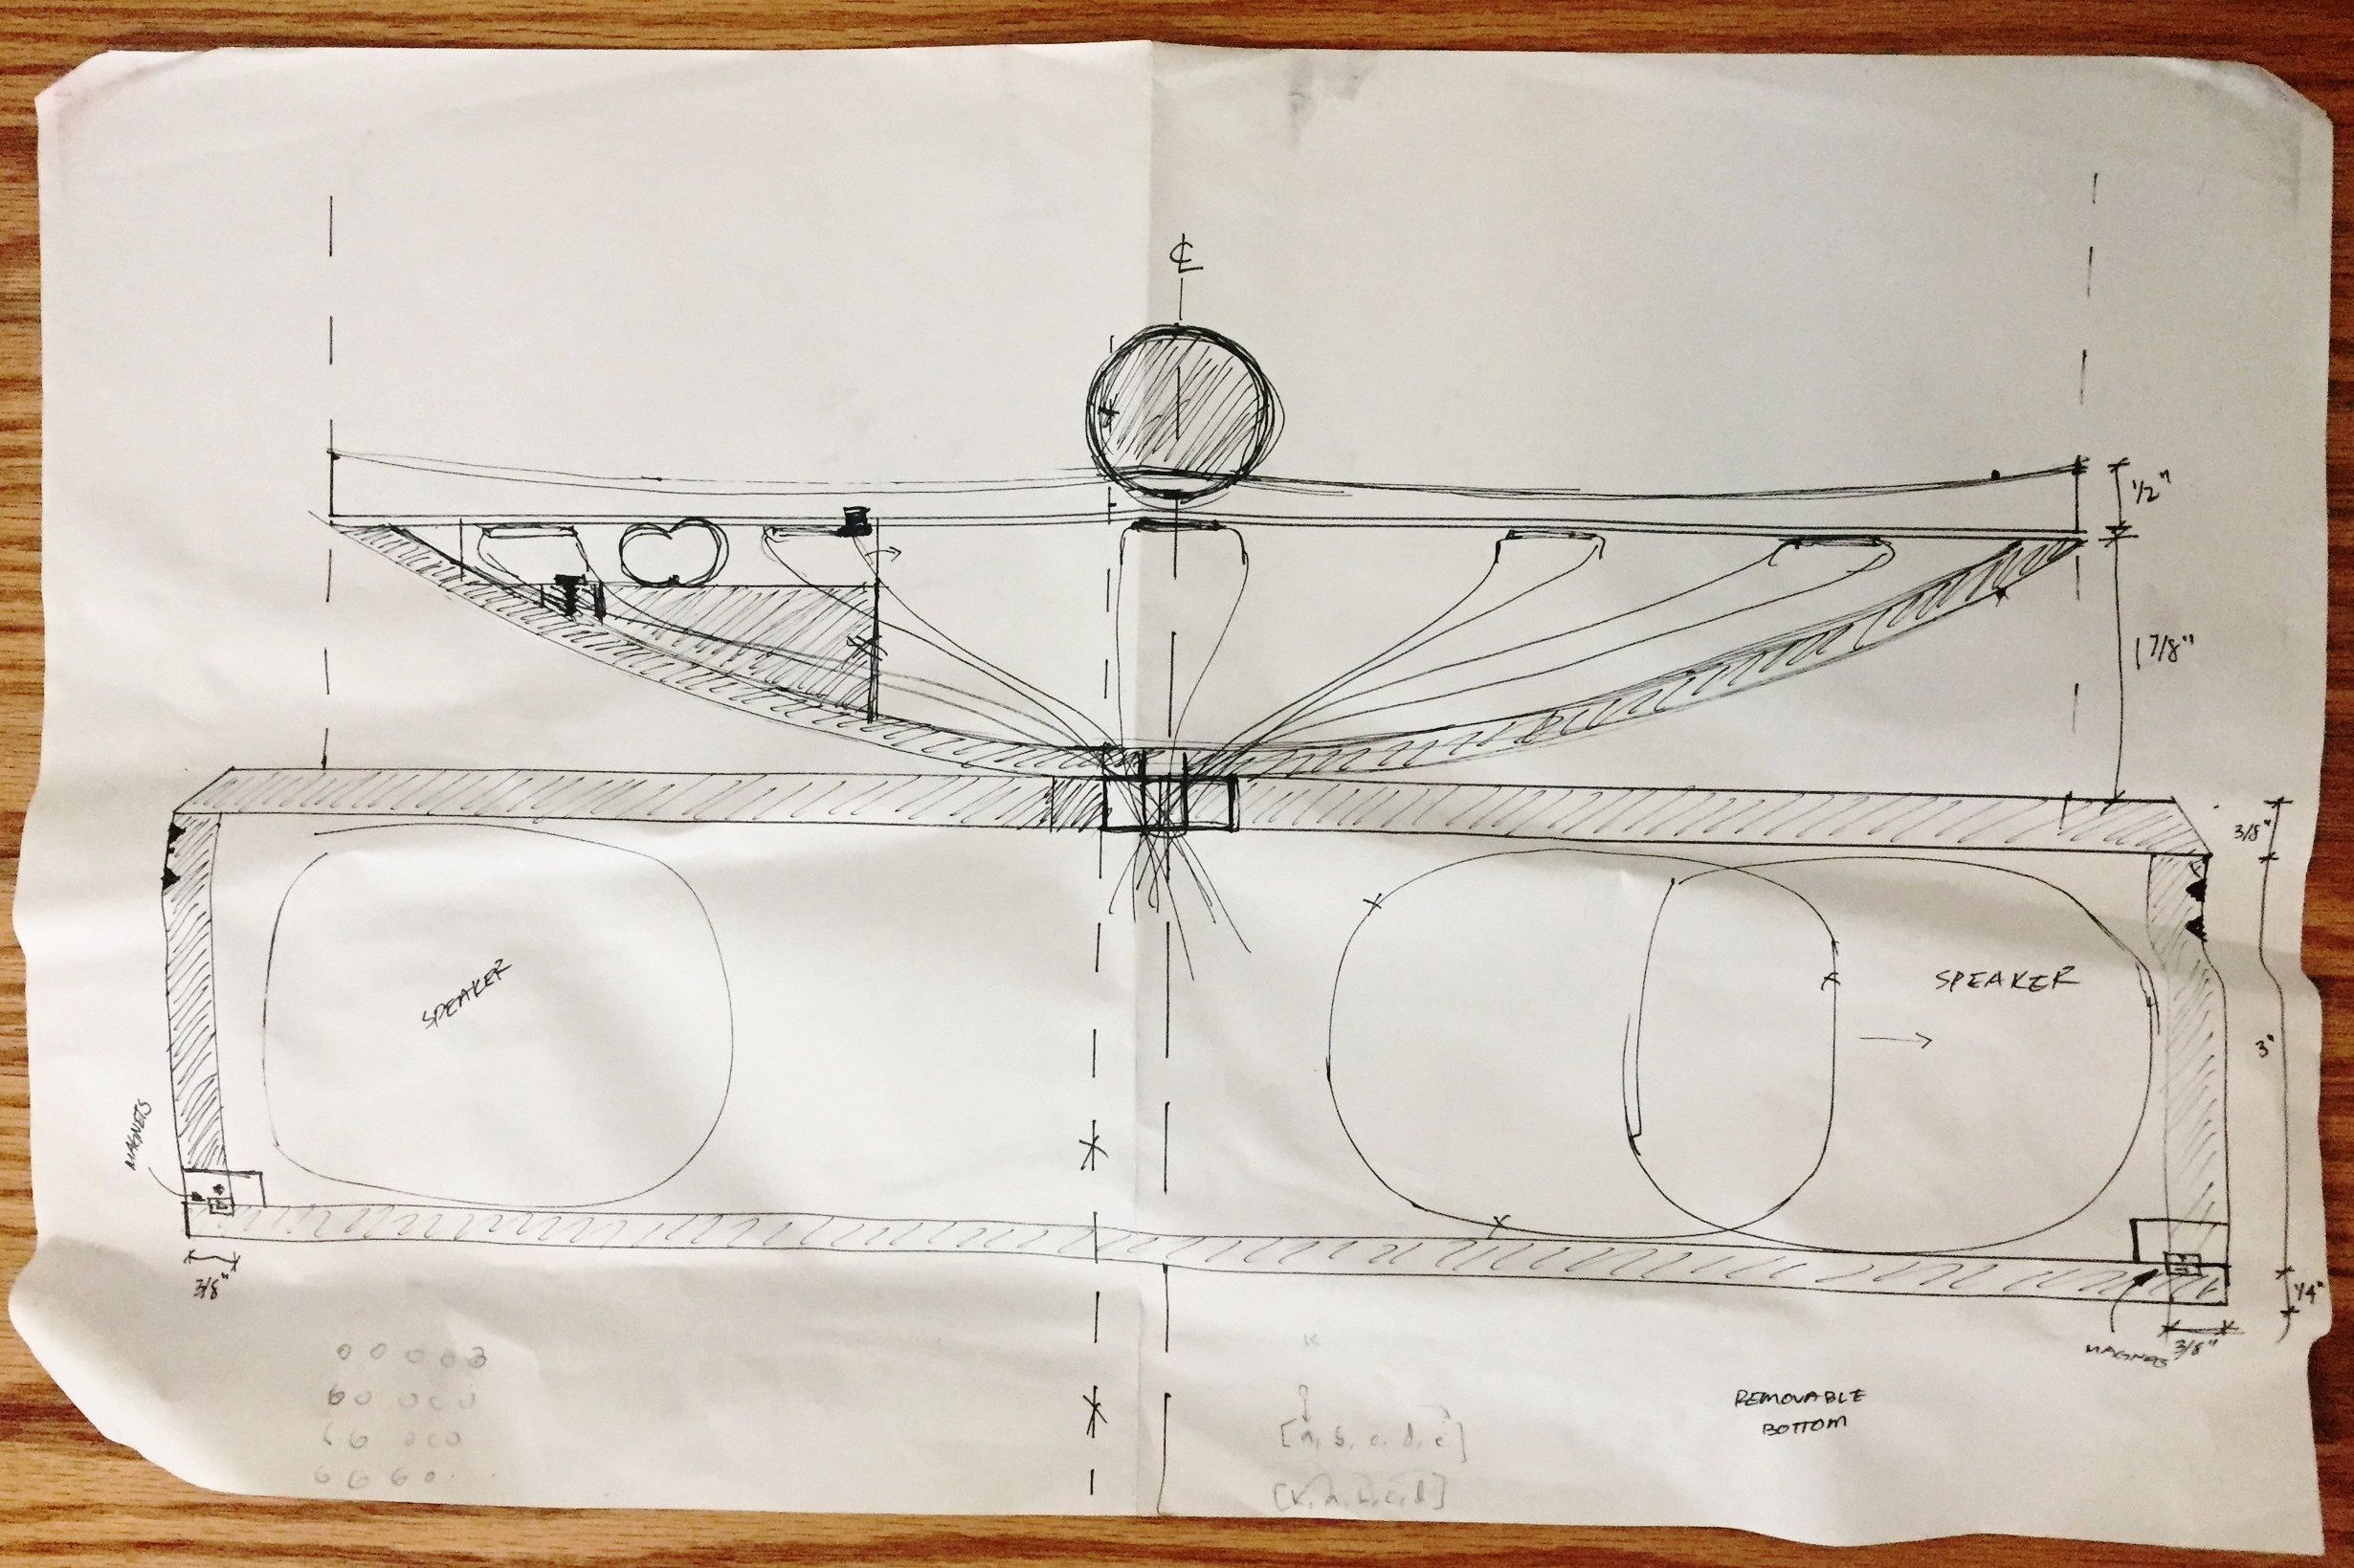 Initial plans for the final design